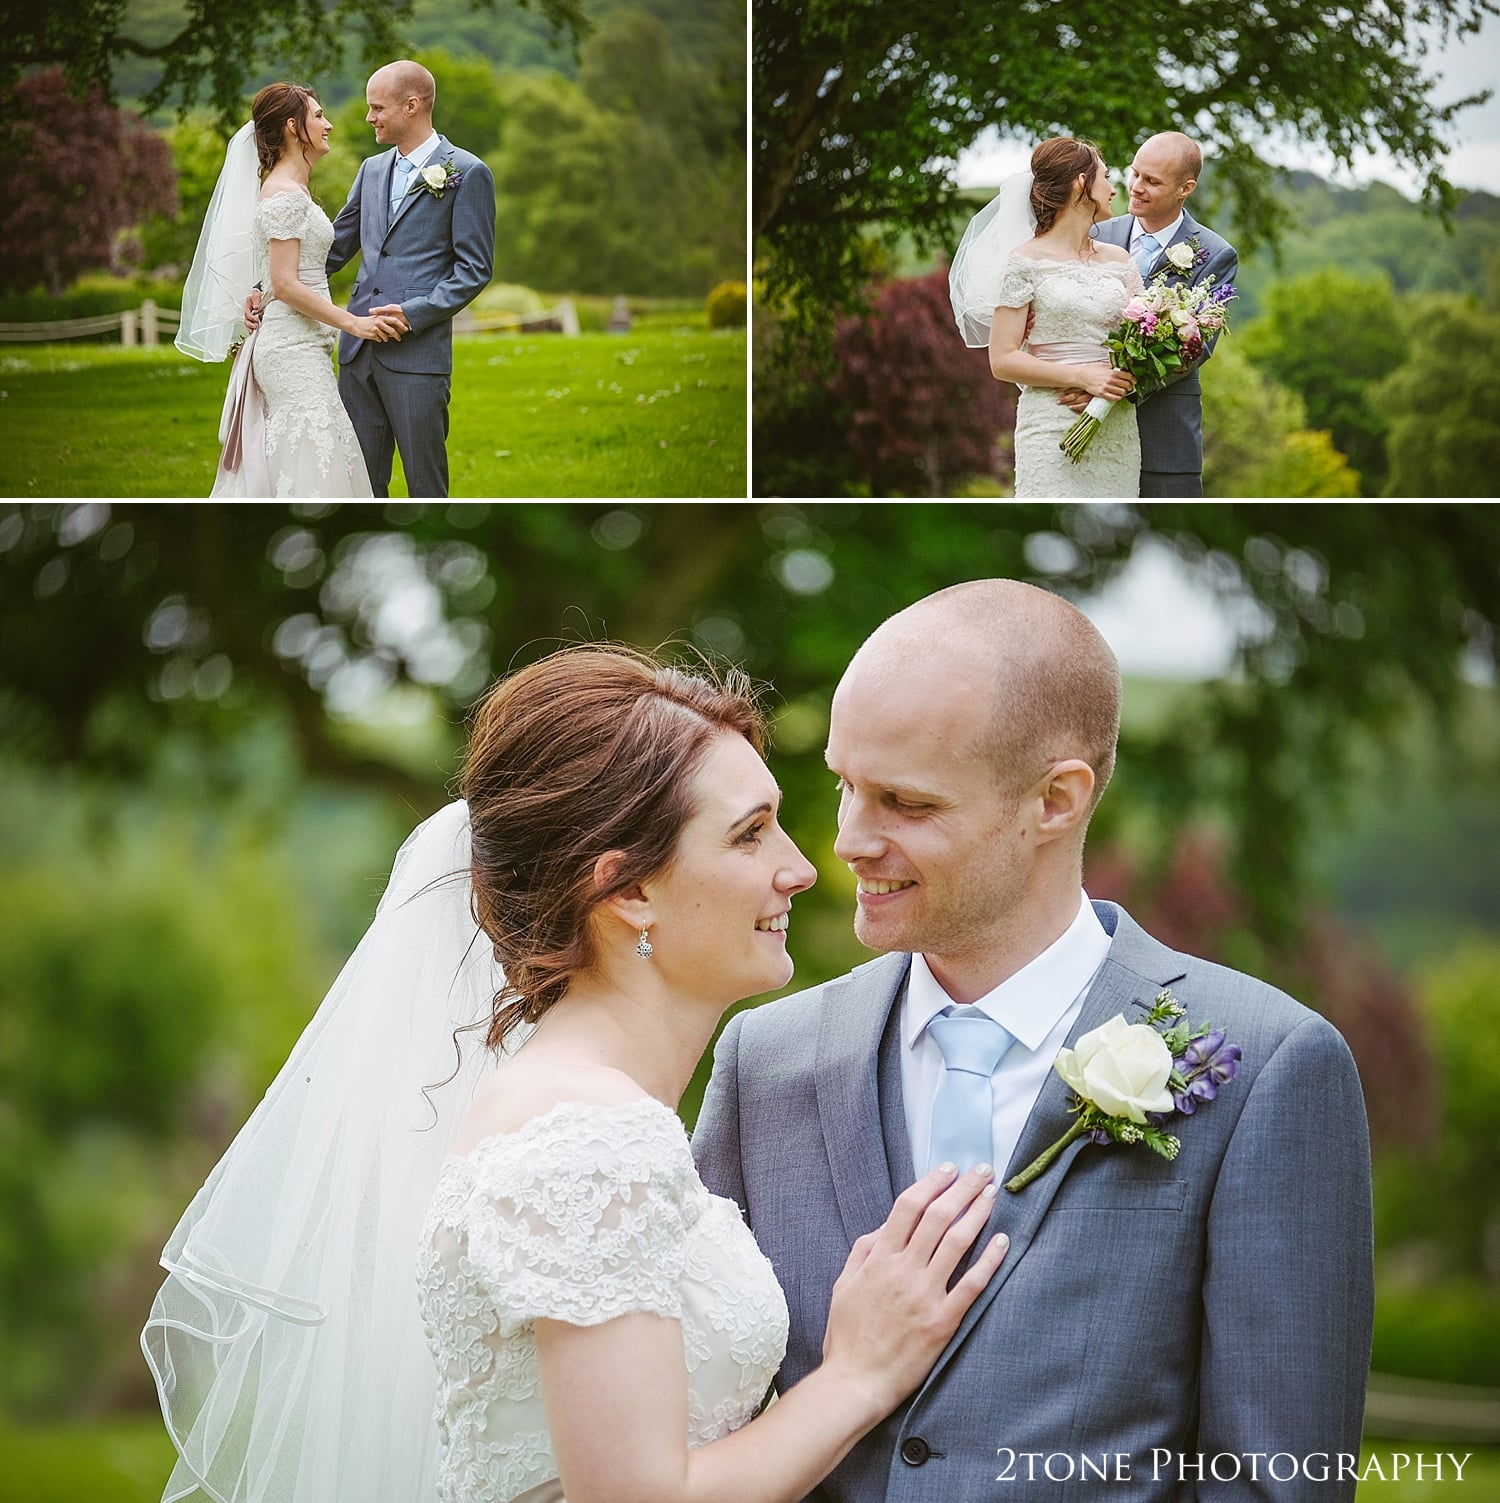 Natural wedding photography at St Oswin's Church in Newton Under Roseberry by 2tone photography www.2tonephotograpy.co.uk